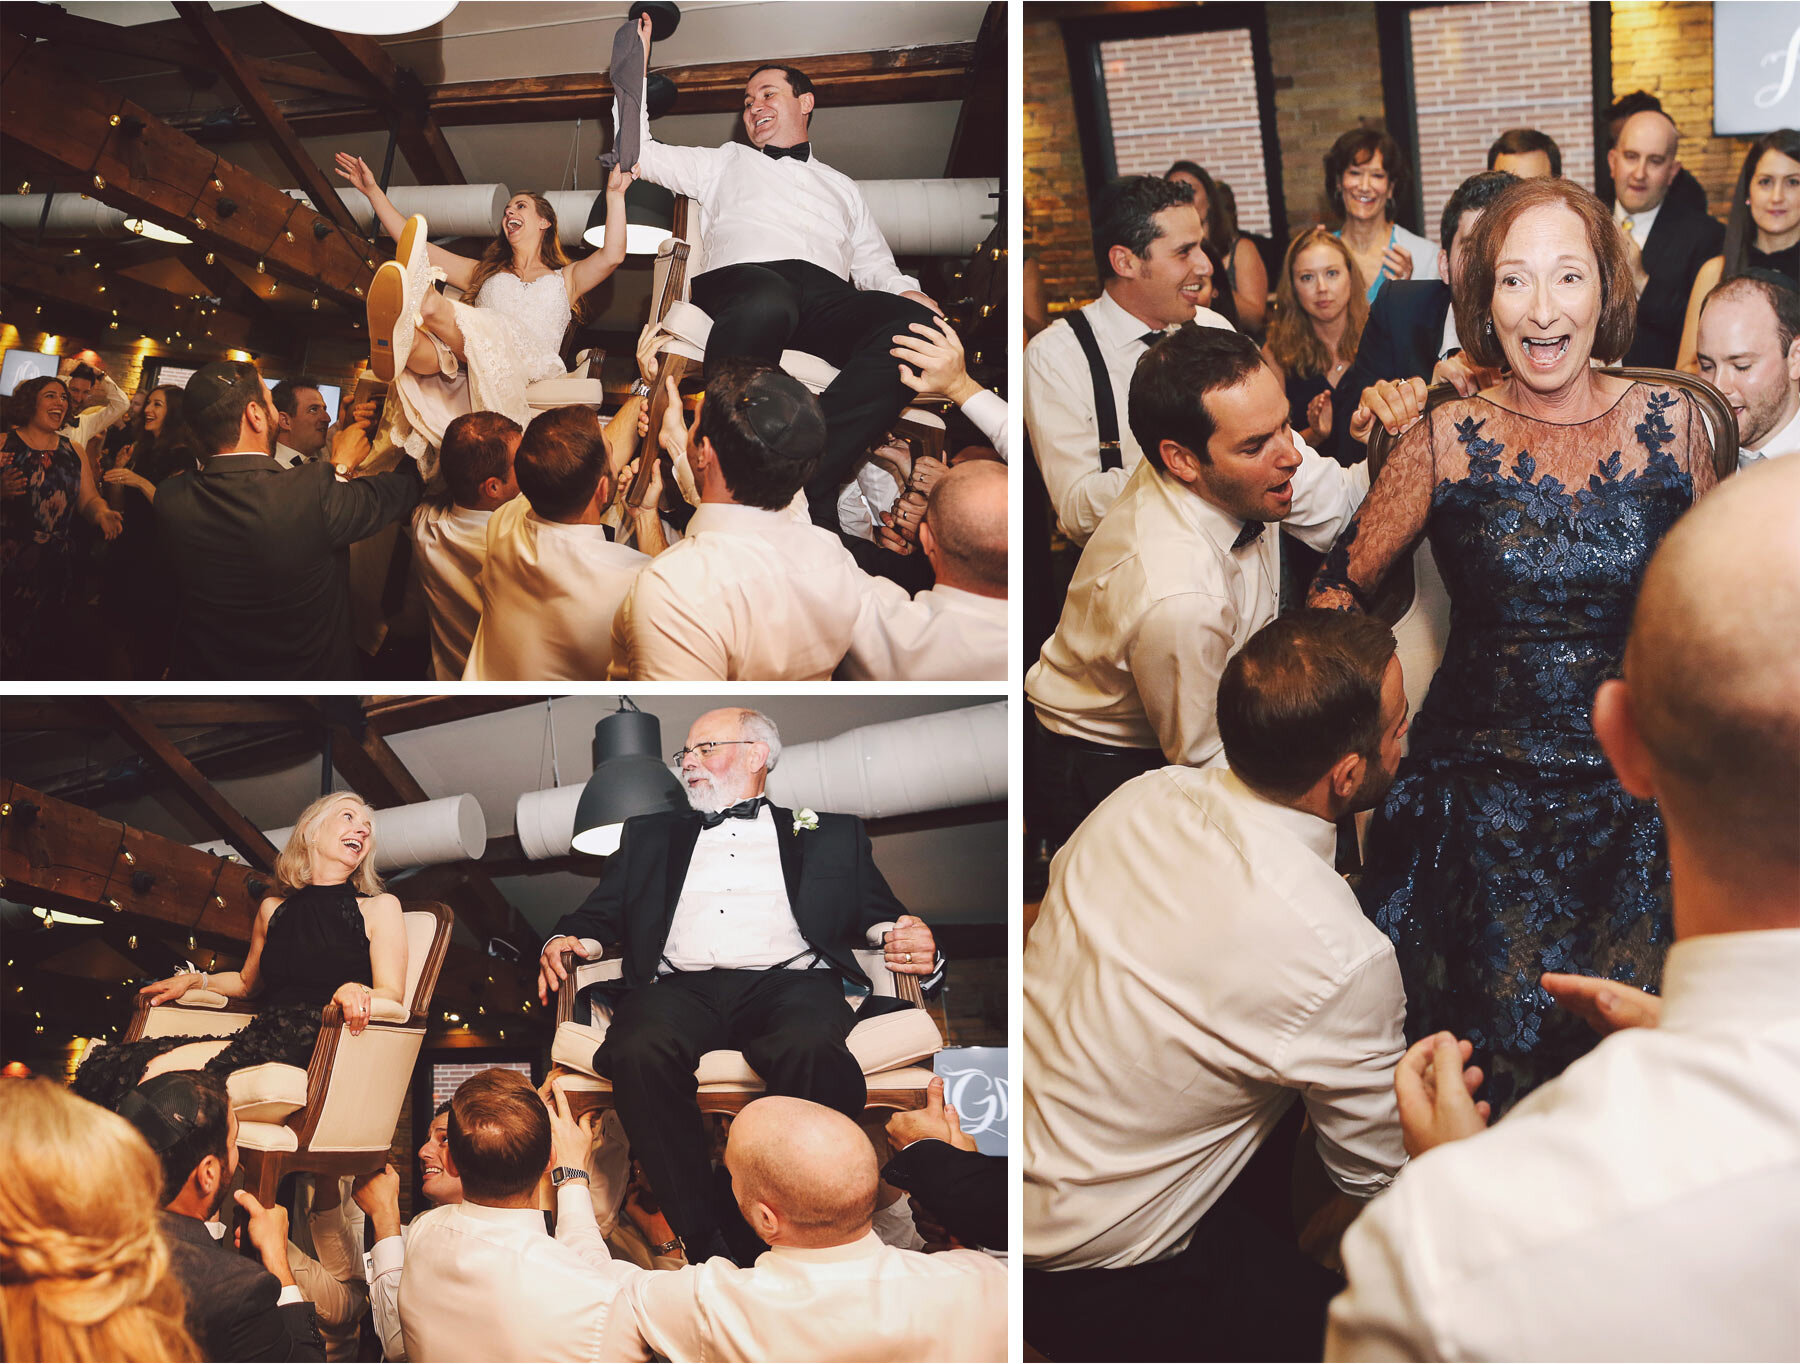 17-Minnesota-Wedding-Vick-Photography-Minneapolis-Event-Centers-Chair-Dance-Jewish-Reception-Amy-and-Avi.jpg